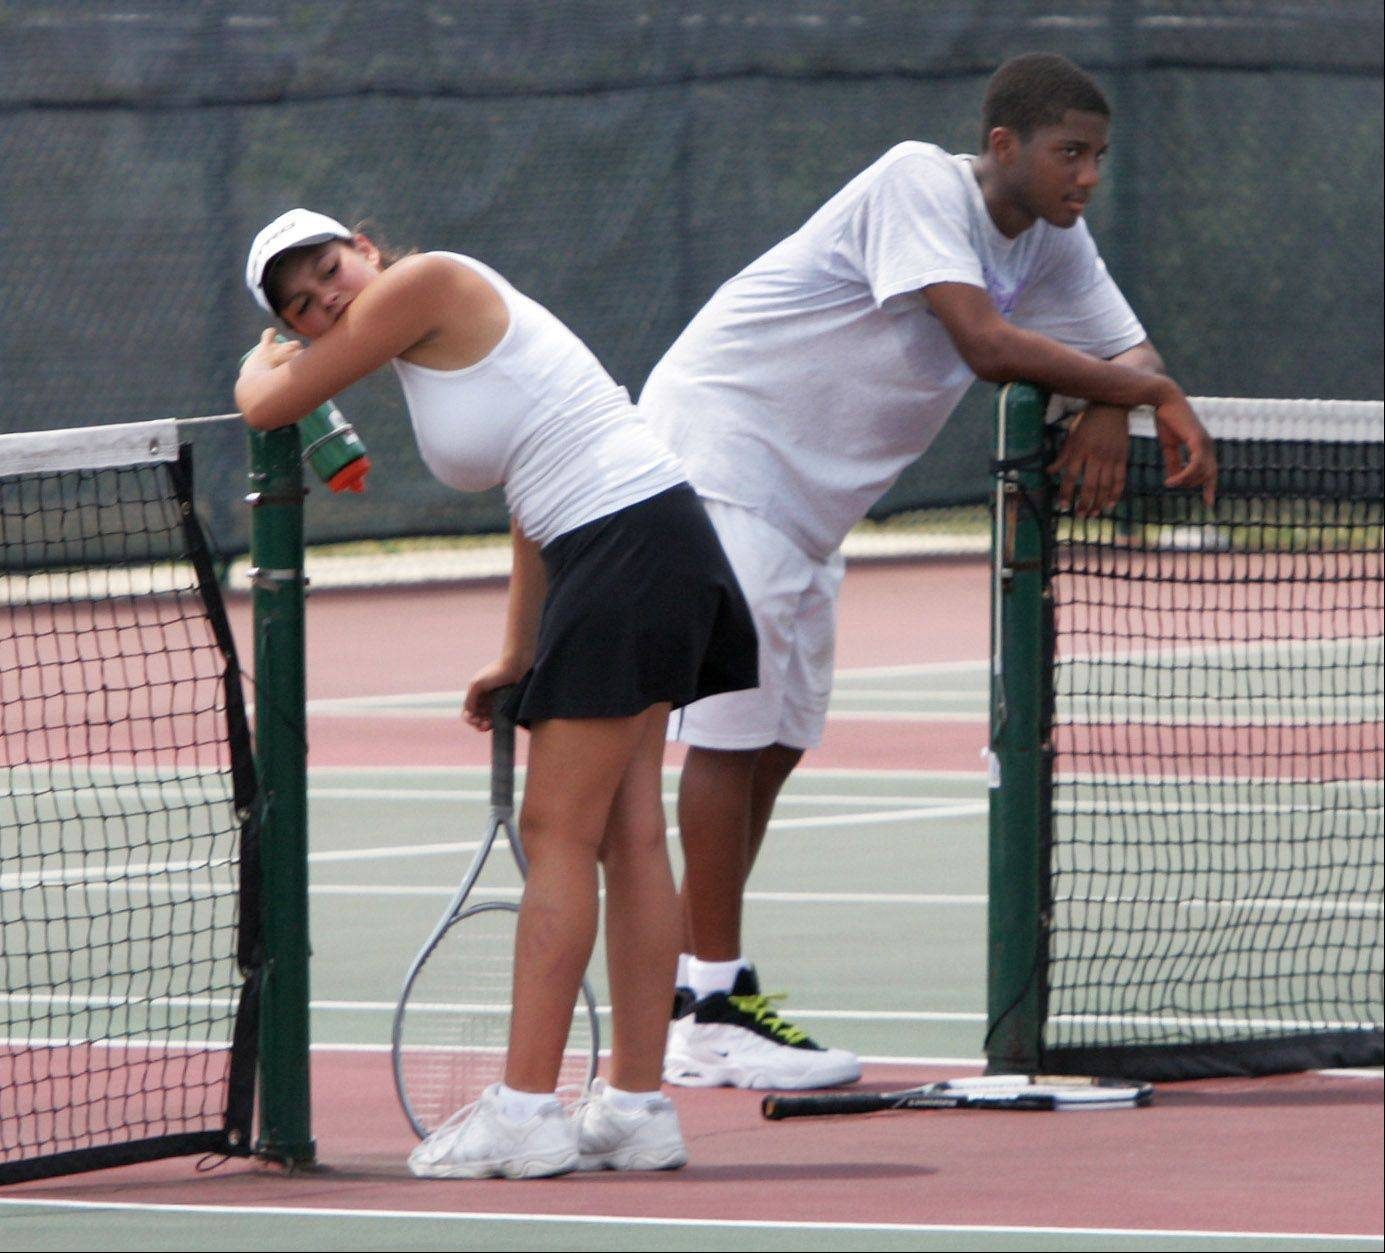 Nicole Garcia, 17, left, and Aaron Jackson, 18, are exhausted after coaching tennis at Grayslake Central High School's summer tennis camp Tuesday.